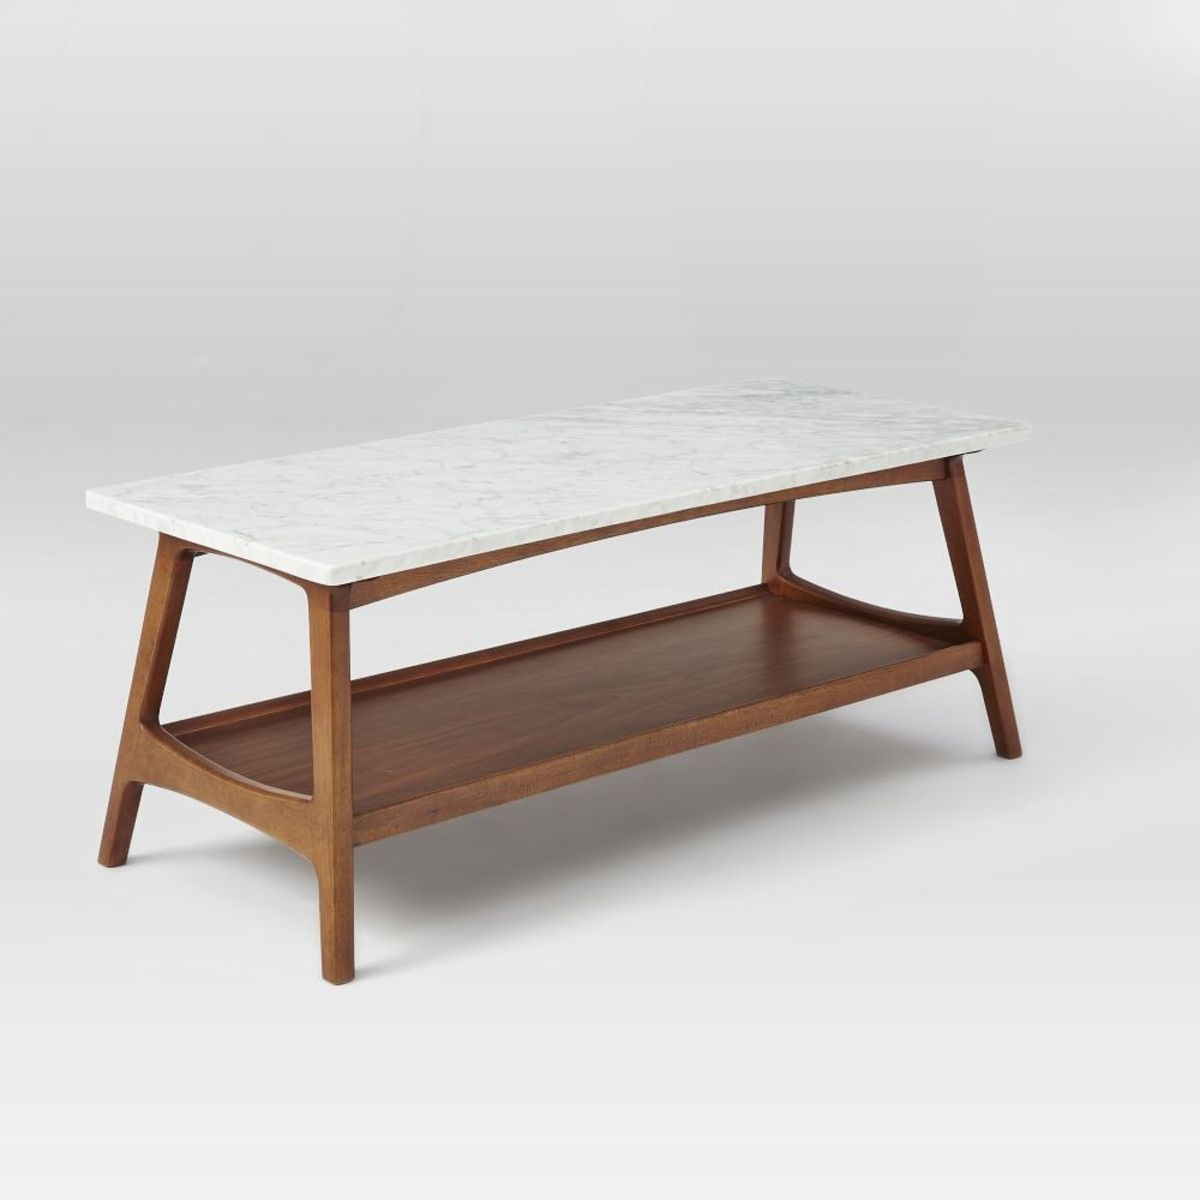 Reeve midcentury rectangular coffee table ruffsawn pinterest